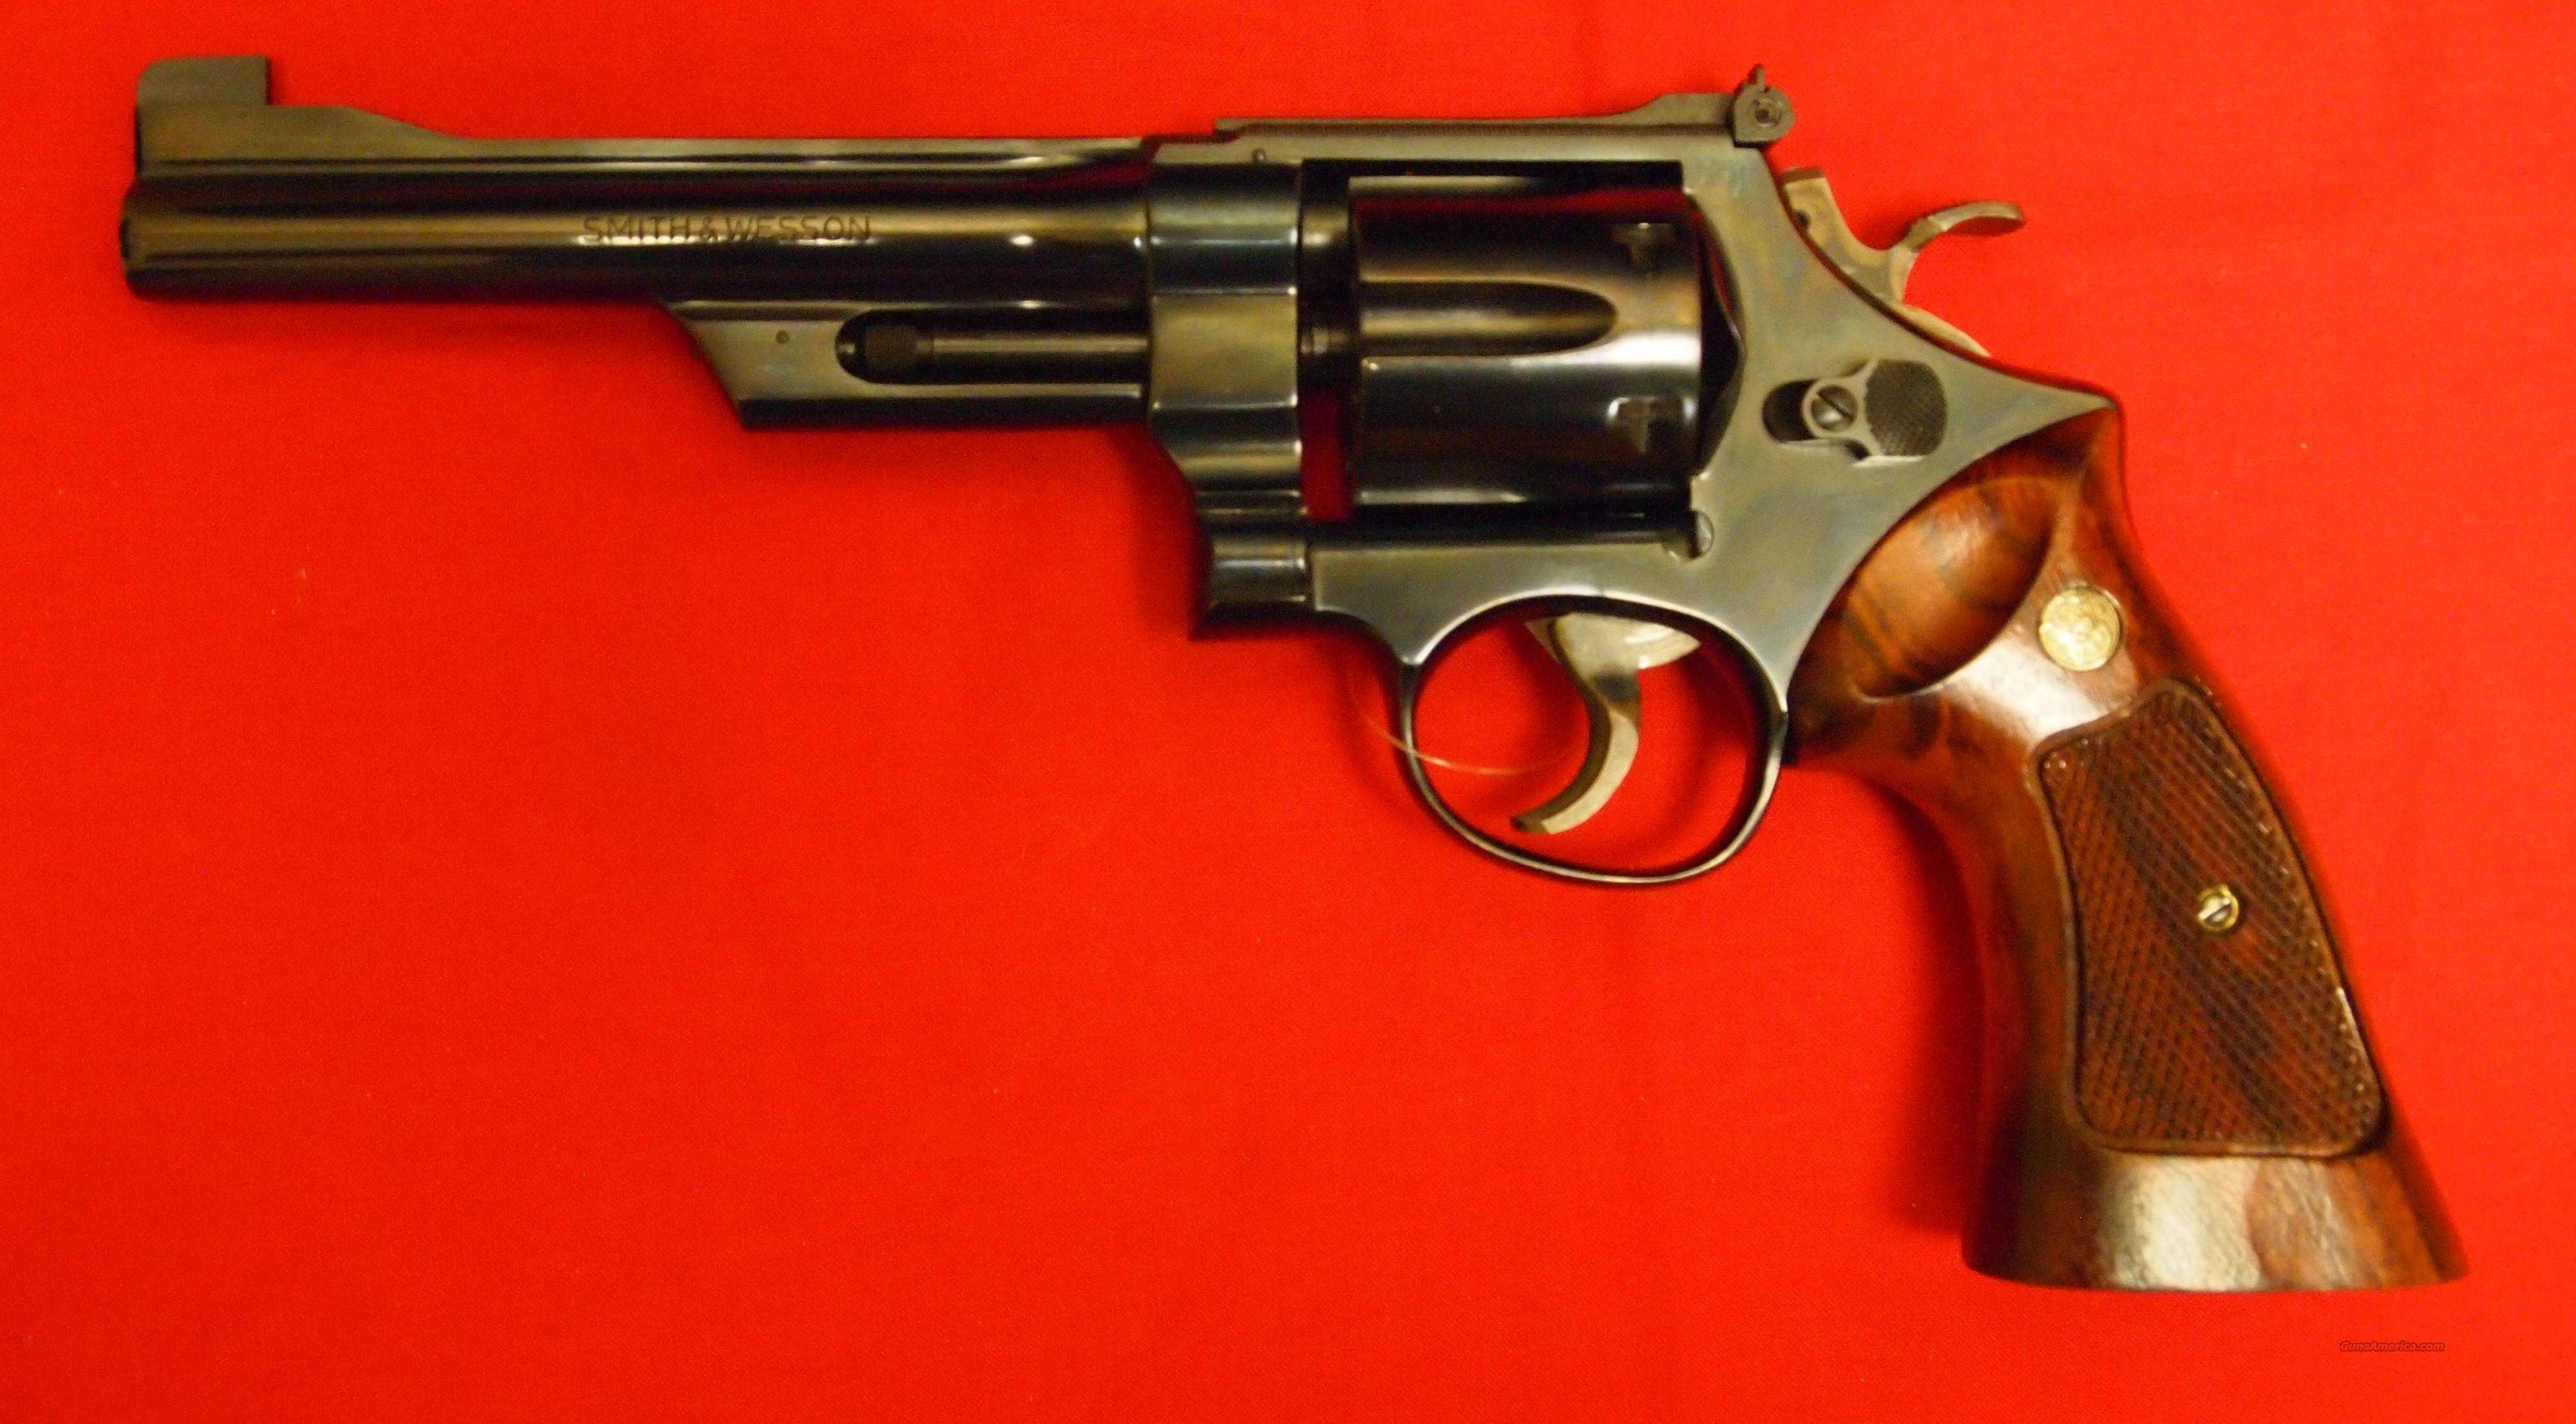 Smith and Wesson Model 27, 357 Magnum  Guns > Pistols > Smith & Wesson Revolvers > Full Frame Revolver